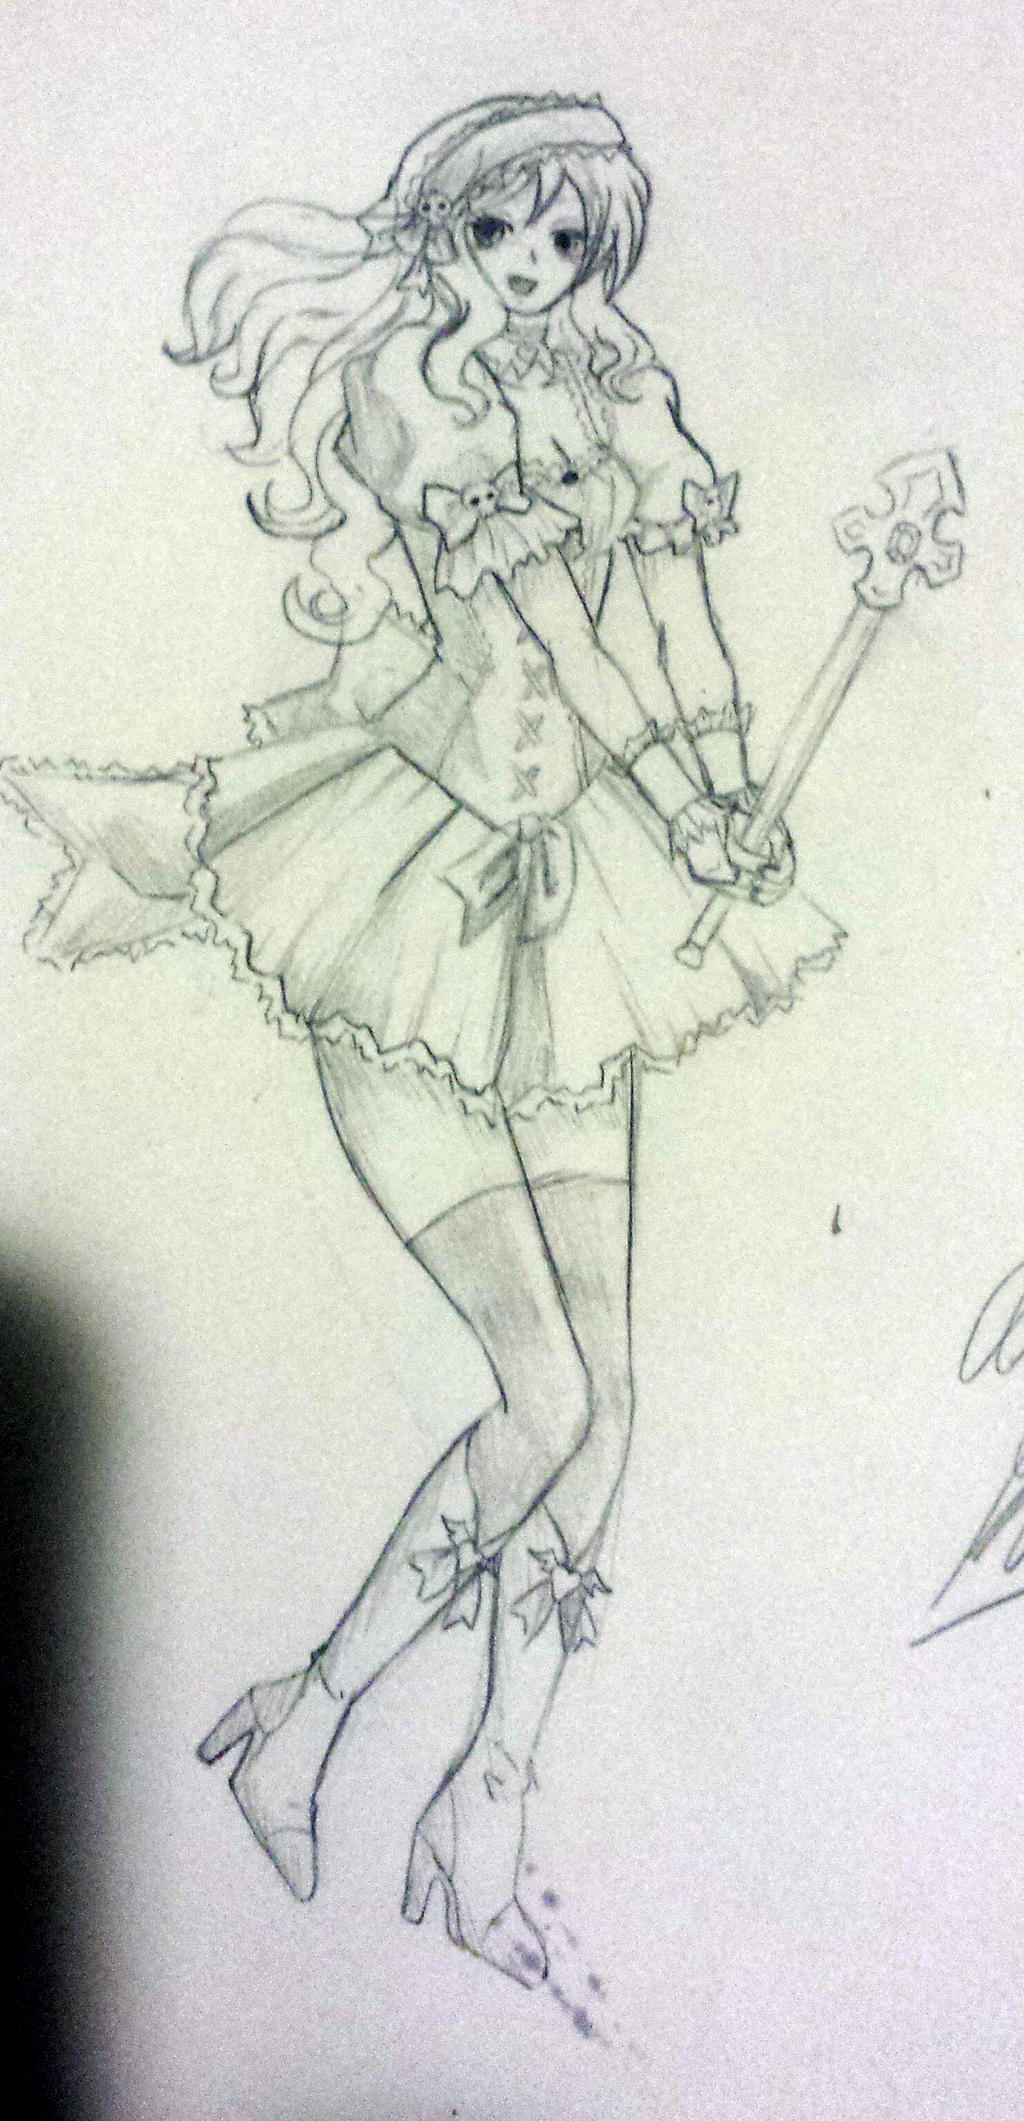 Anime Magical Girl sketch by LucLeigh on DeviantArt